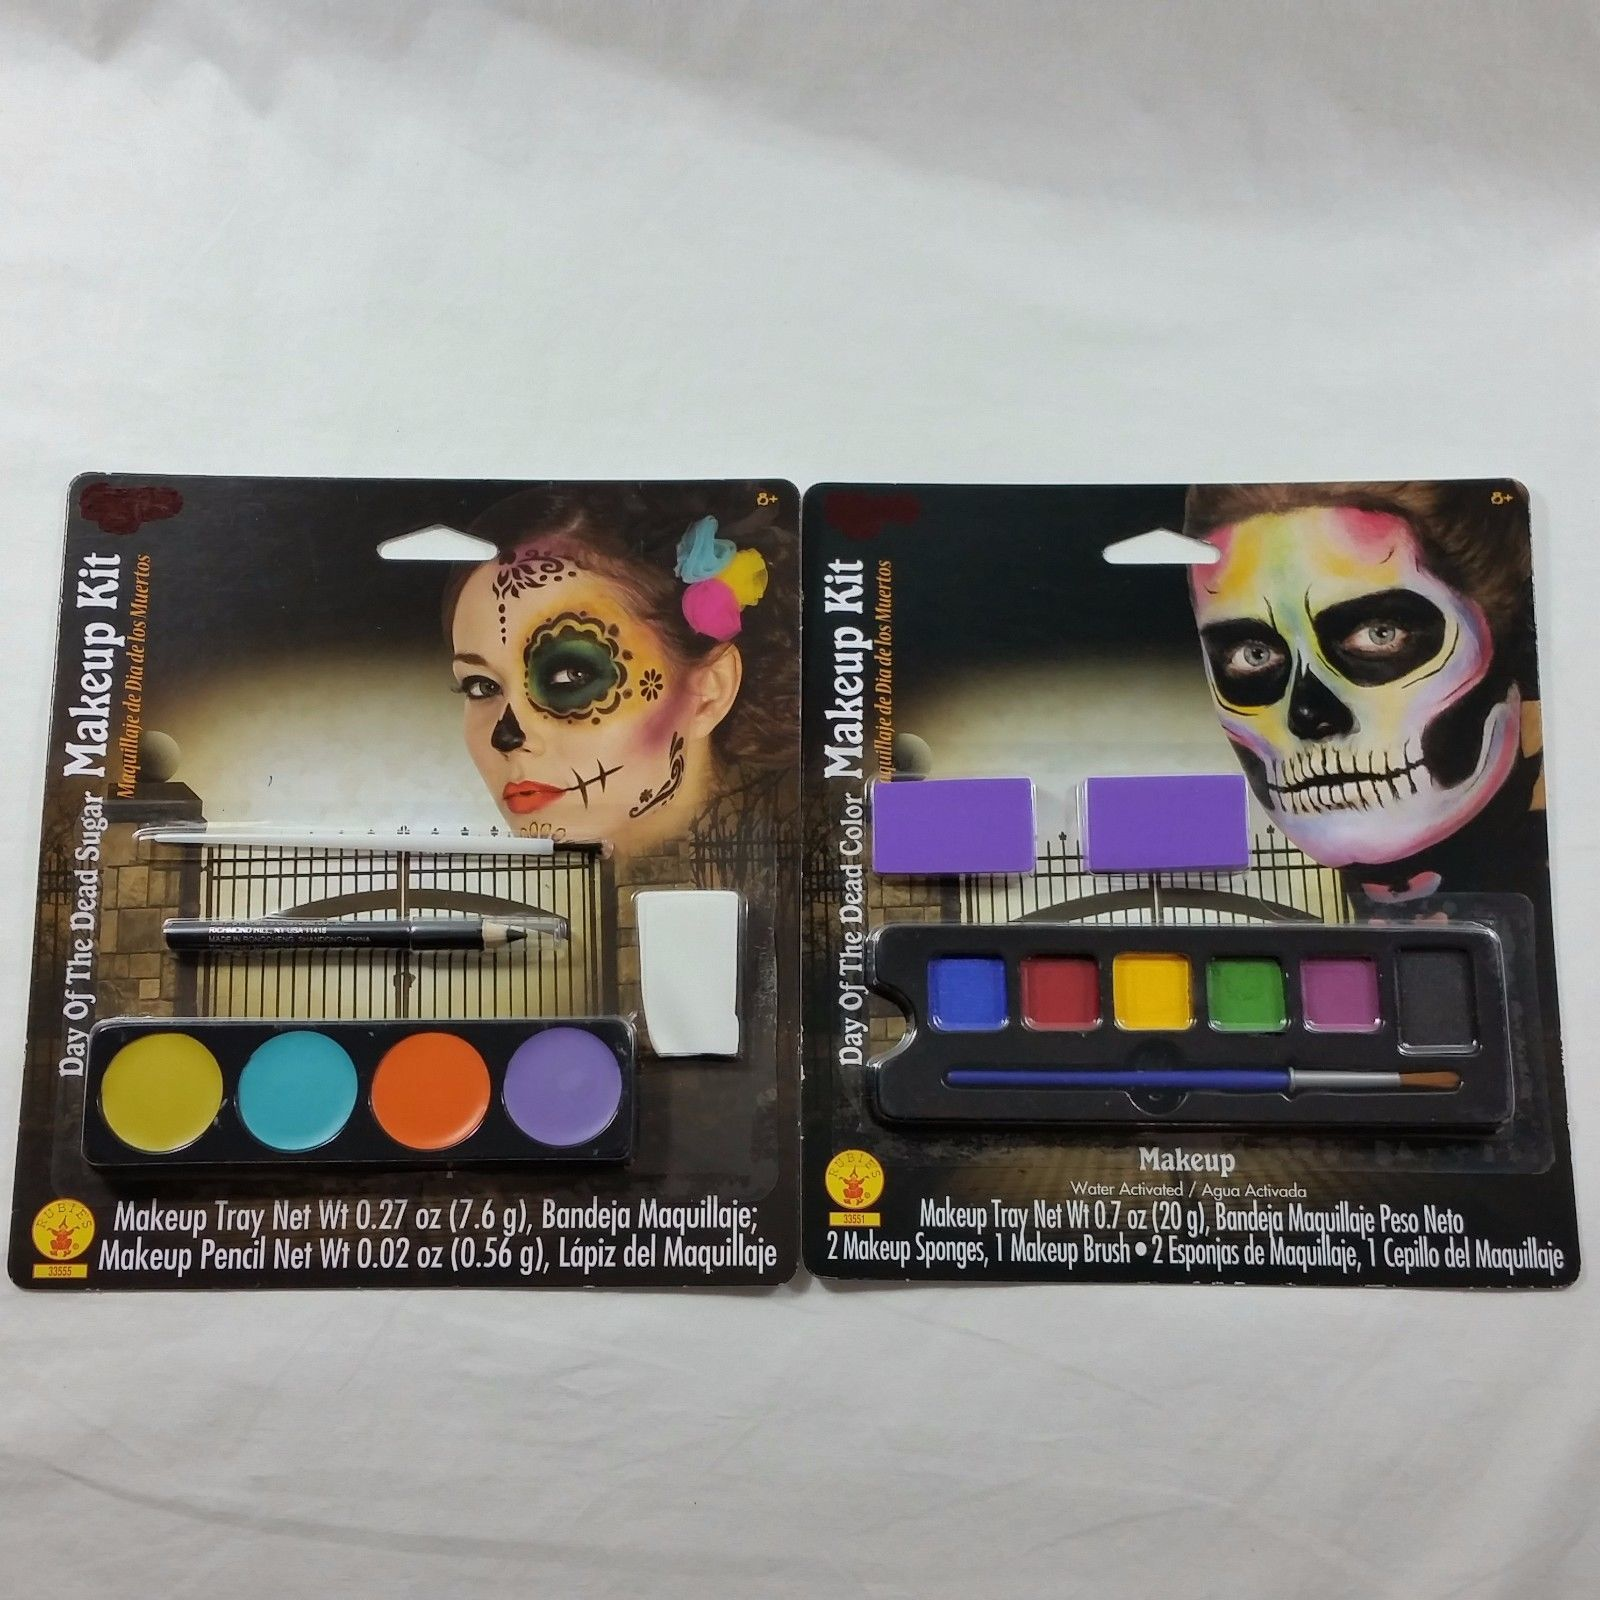 Day of the Dead Sugar Color Makeup Kit 2 Pack Halloween Costume Theater Dress Up